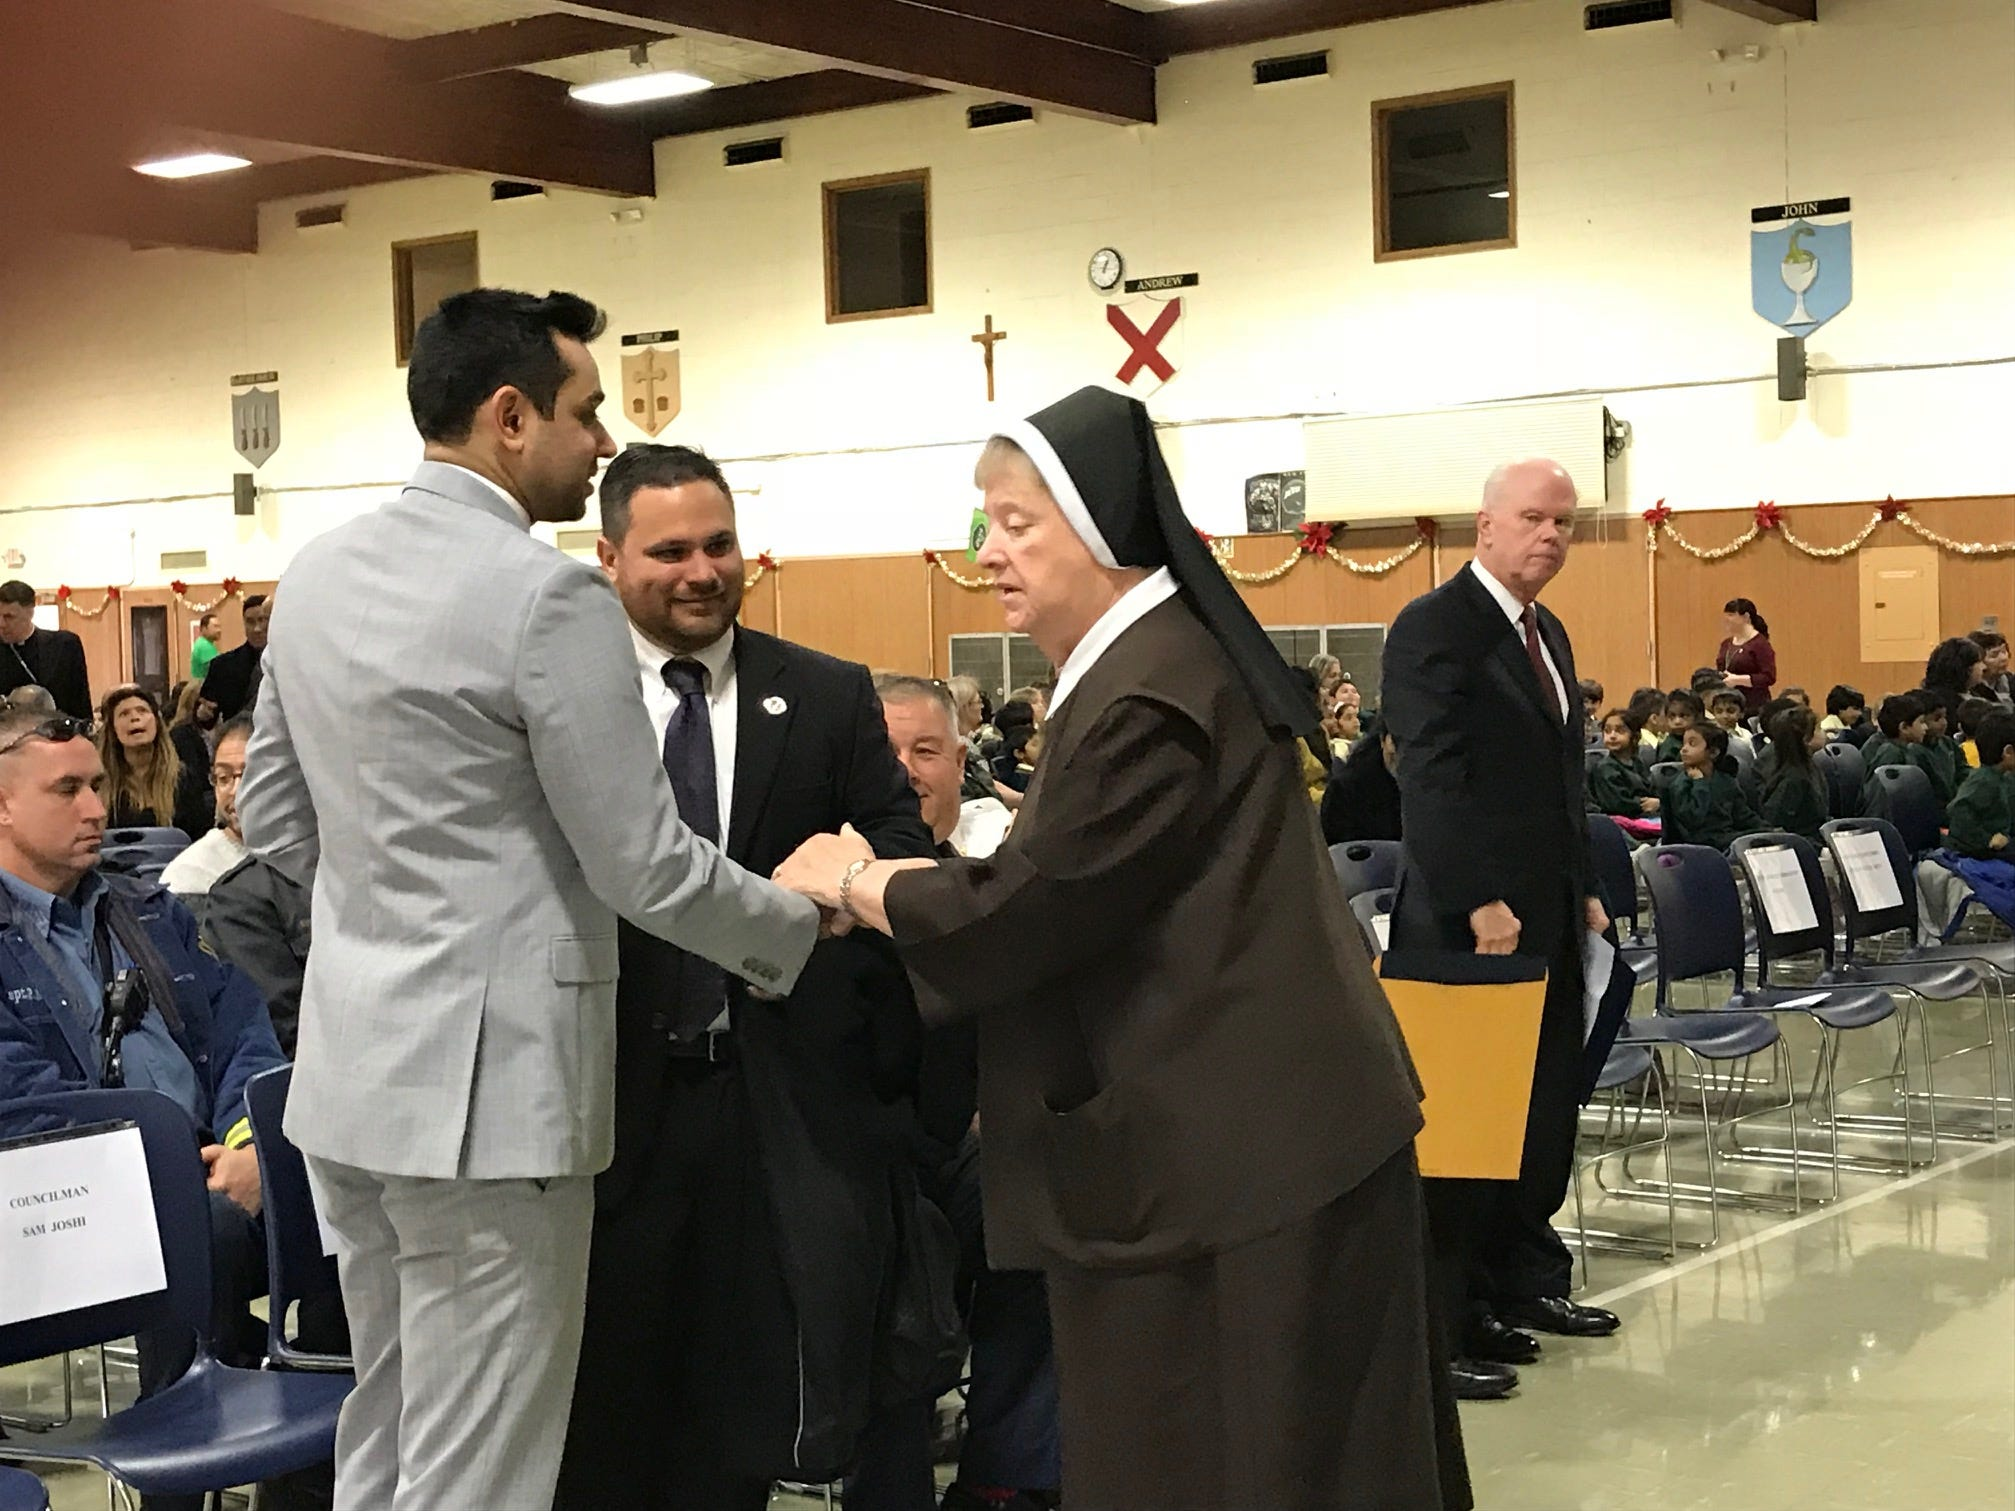 Saint HelenaSchool in Edison celebrated its recognition as a 2018 NationalBlue Ribbon School with an assembly and the raising of the National Blue Ribbon flag on Thursday.